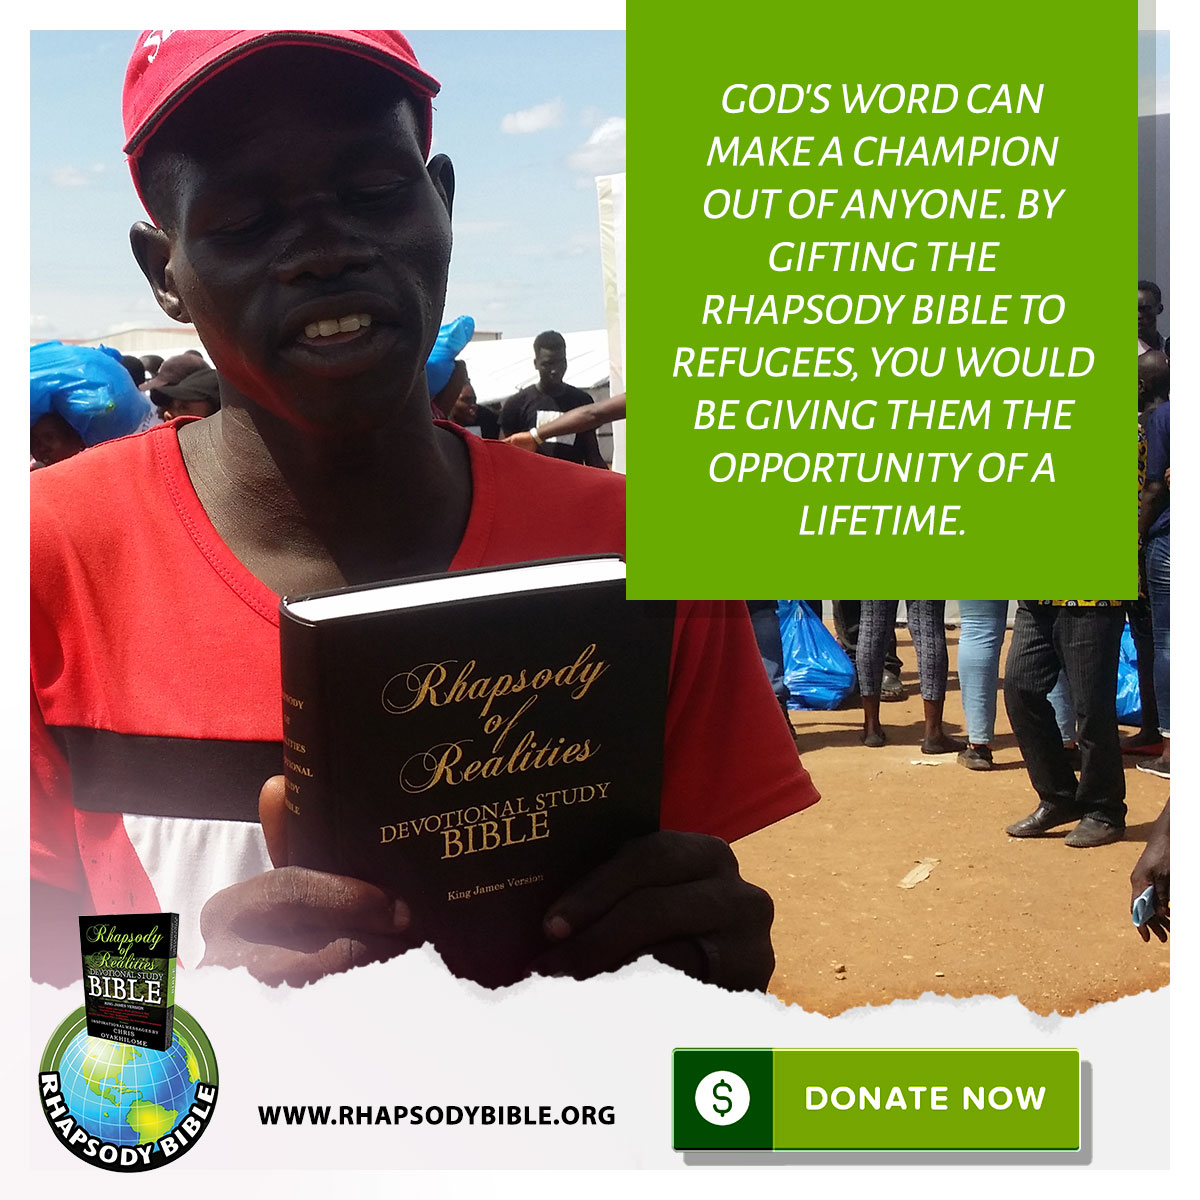 RHAPSODY OF REALITIES CAMPAIGN 2020